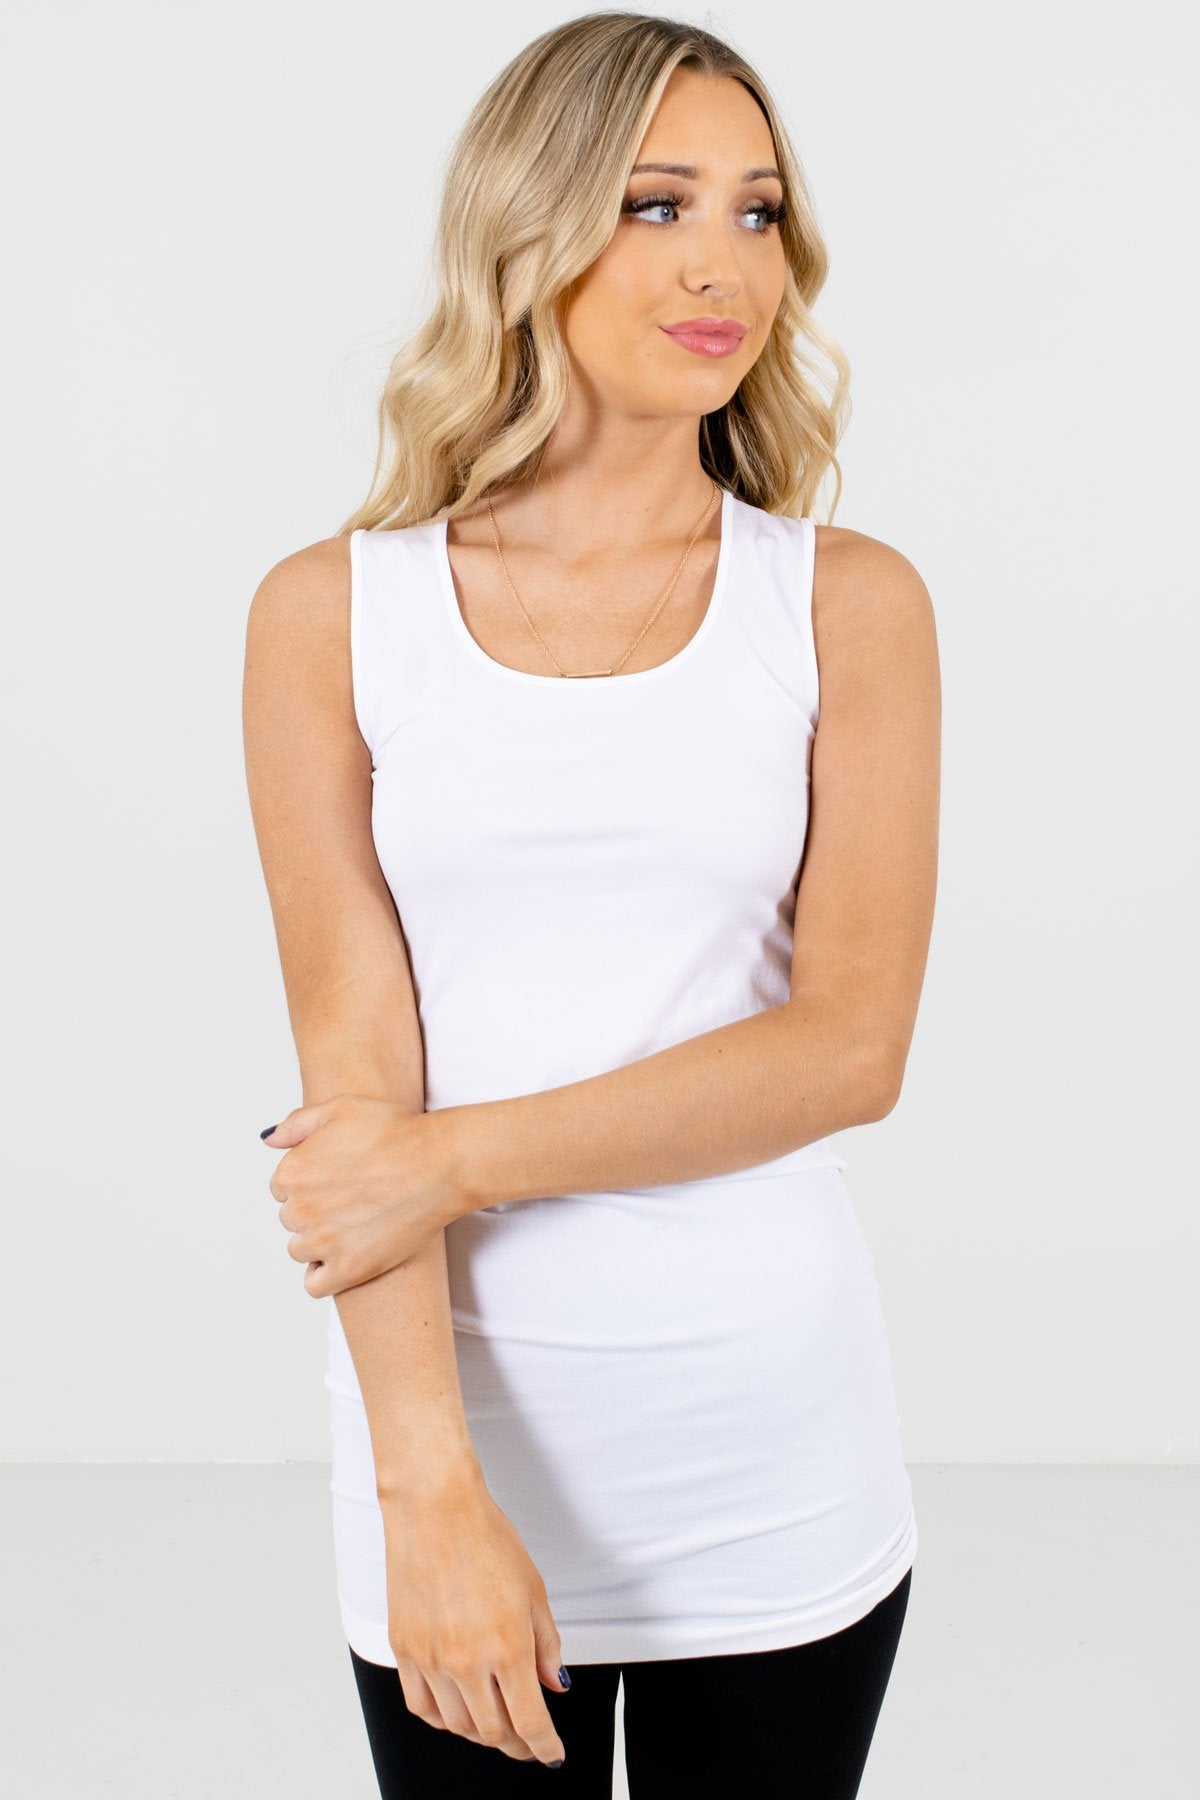 White Comfortable Hugging Fit Boutique Tank Tops for Women